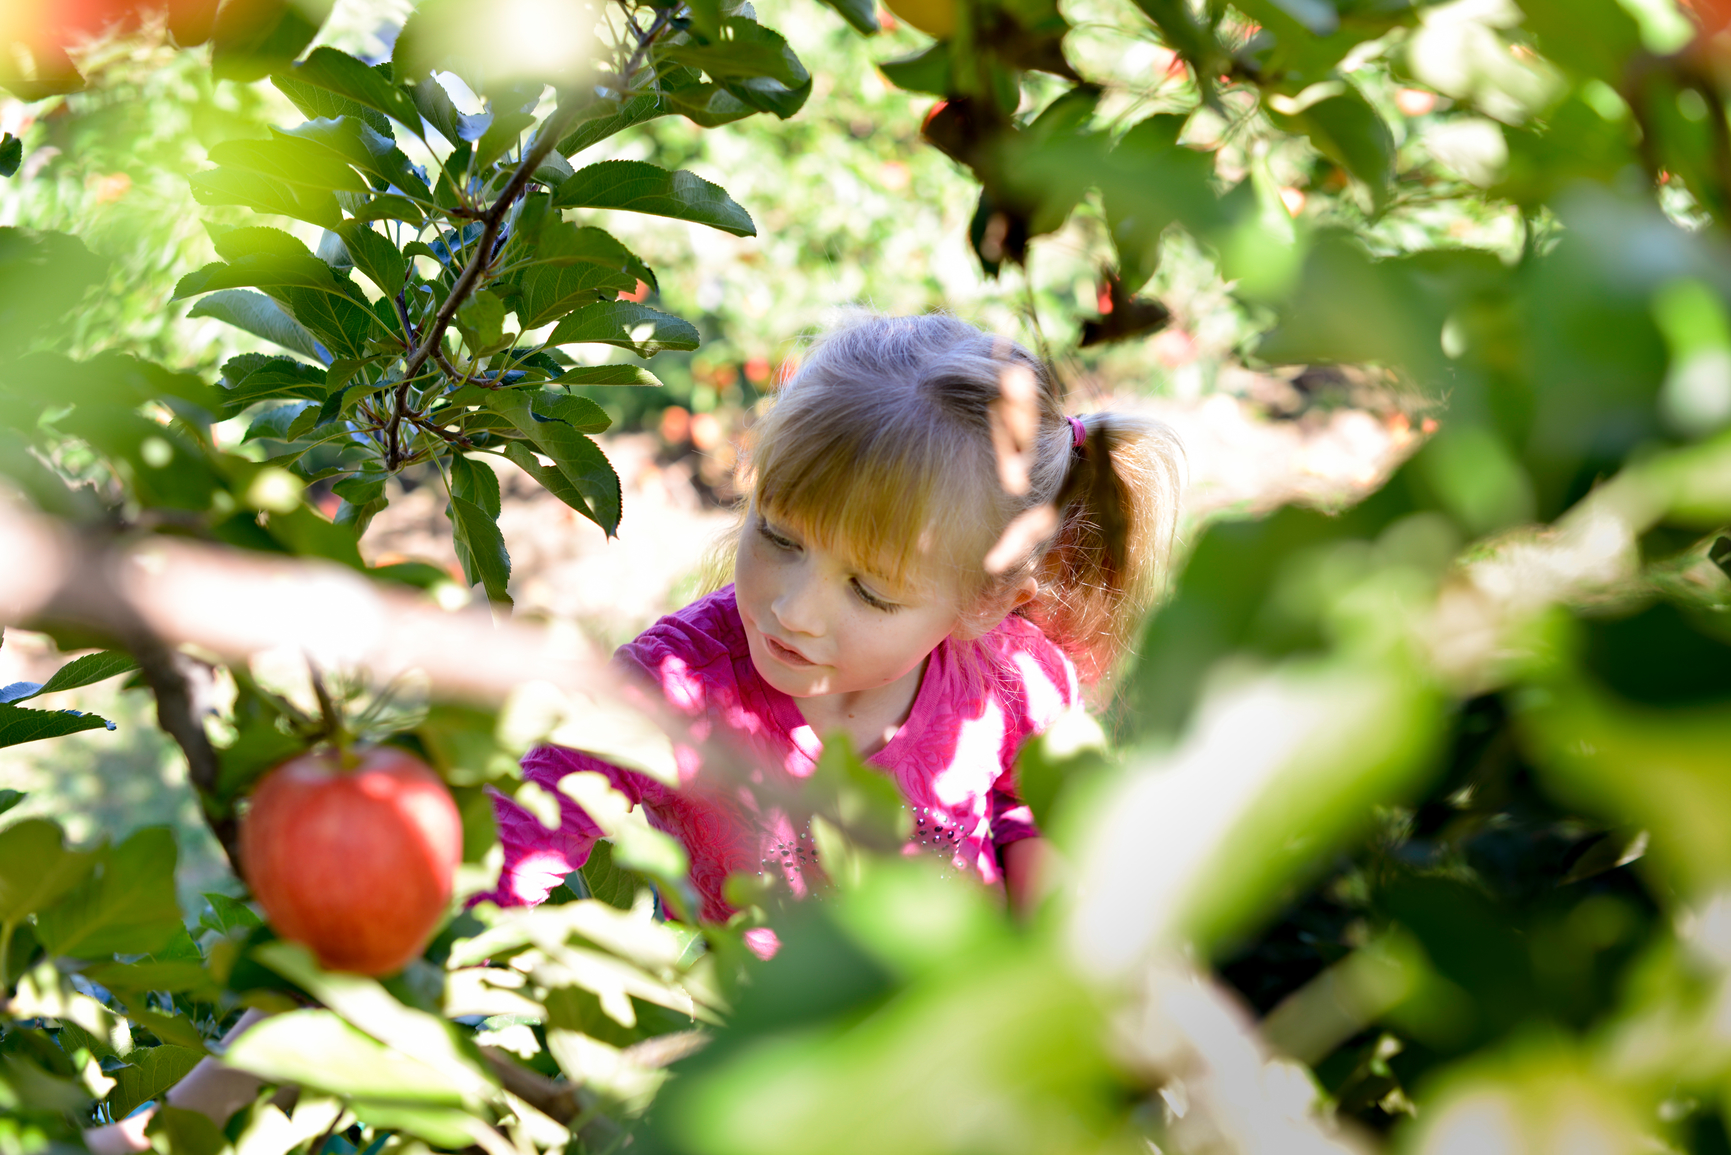 Young girl picking apple from tree